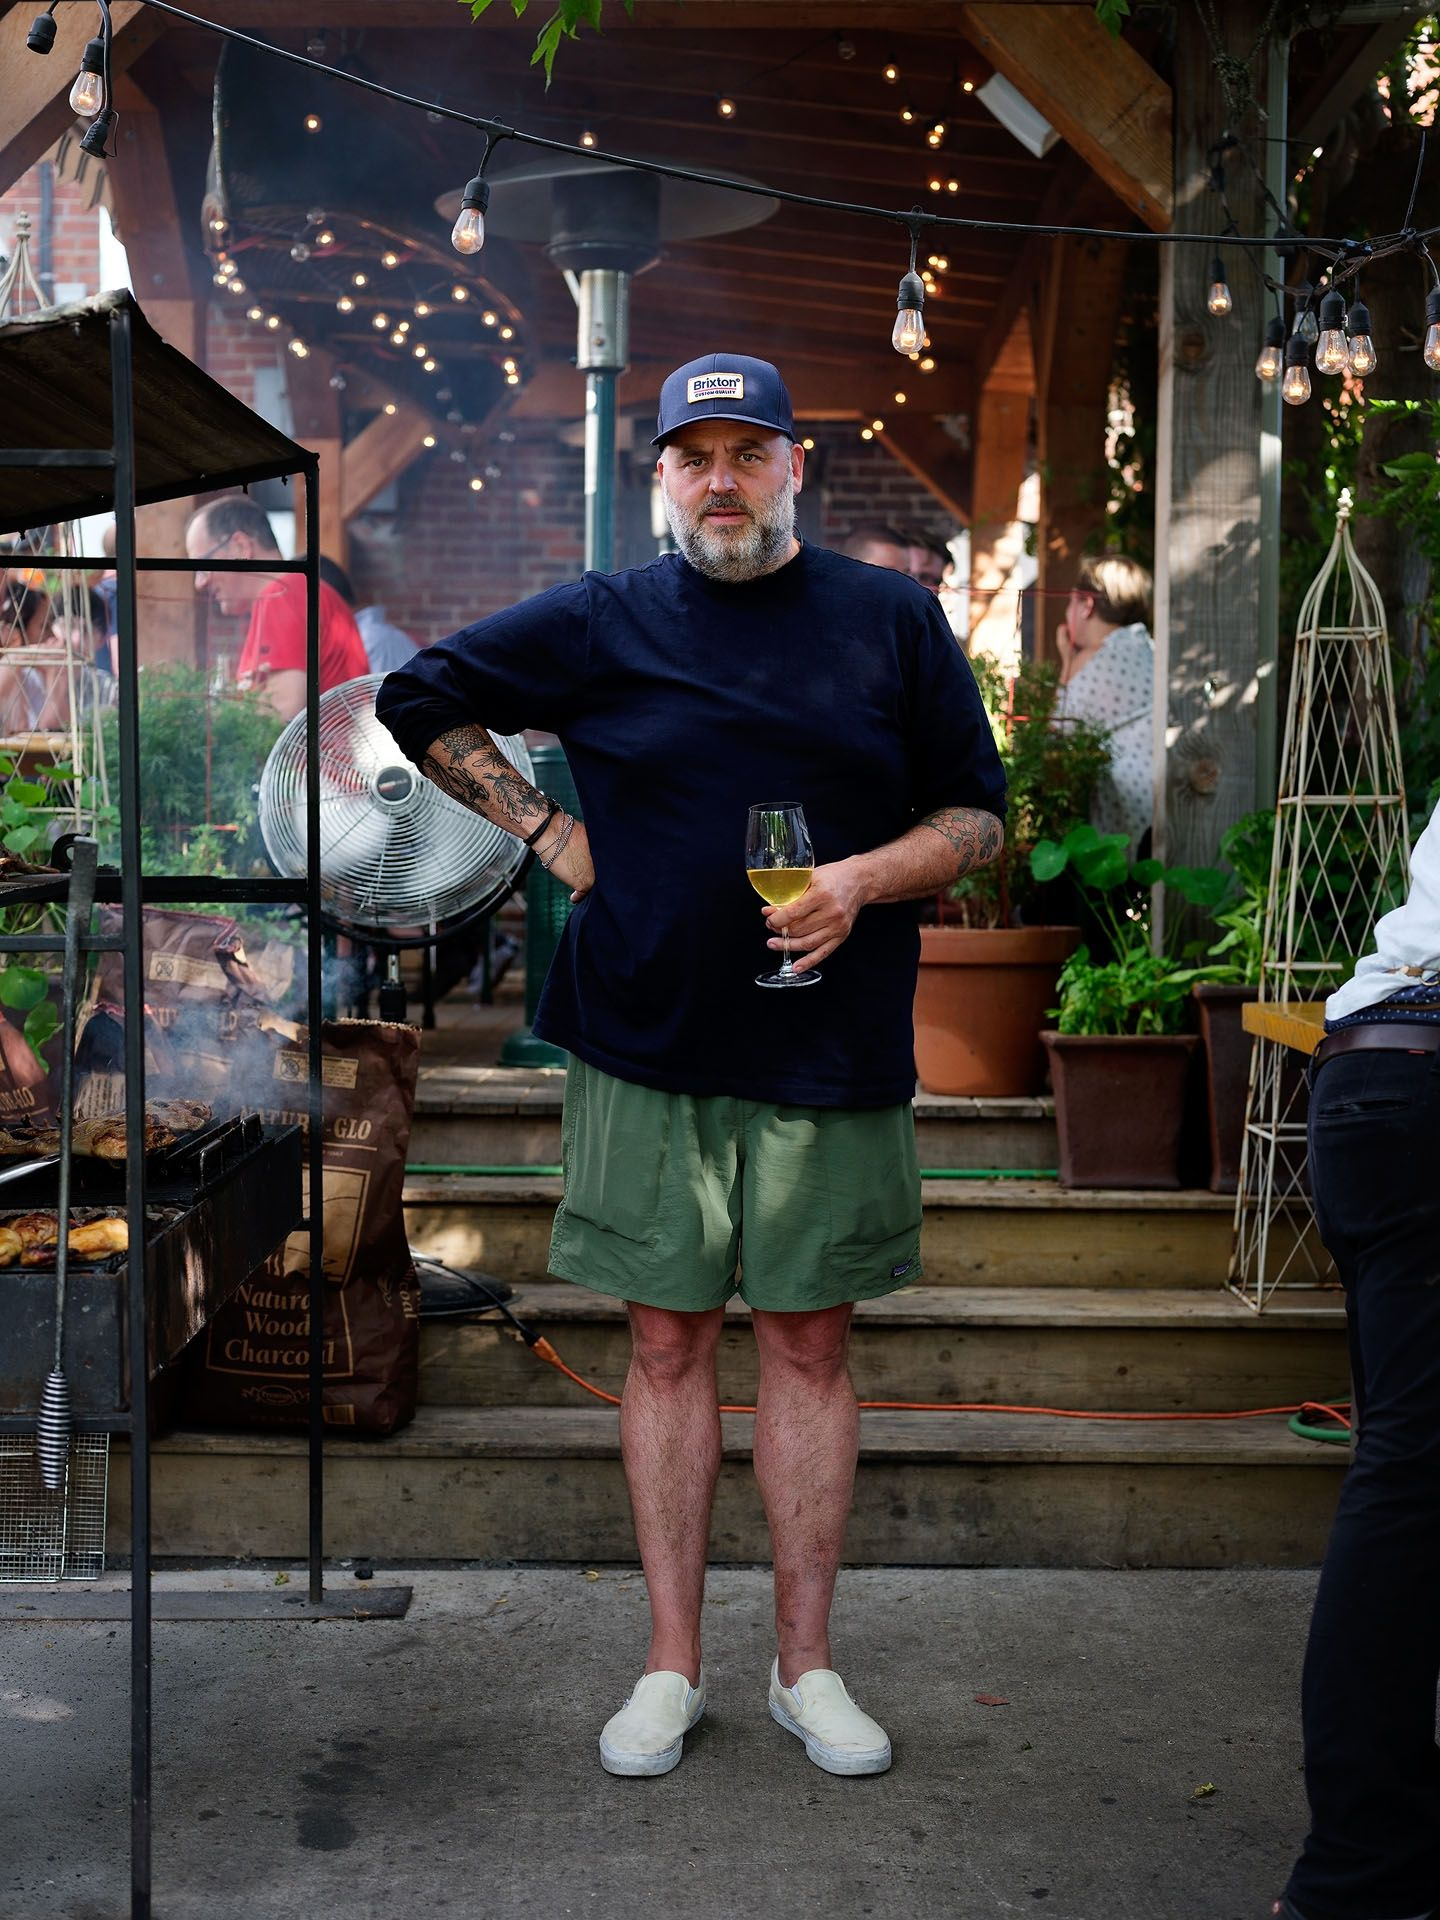 middle aged man standing next to barbecue holding glass of white wine one hand on his hip looking at camera wearing dark blue long sleeved shirt green shorts and white shoes photographed by Guillaume Simoneau as part of Off Duty Montreal series for The Wall Street Journal magazine